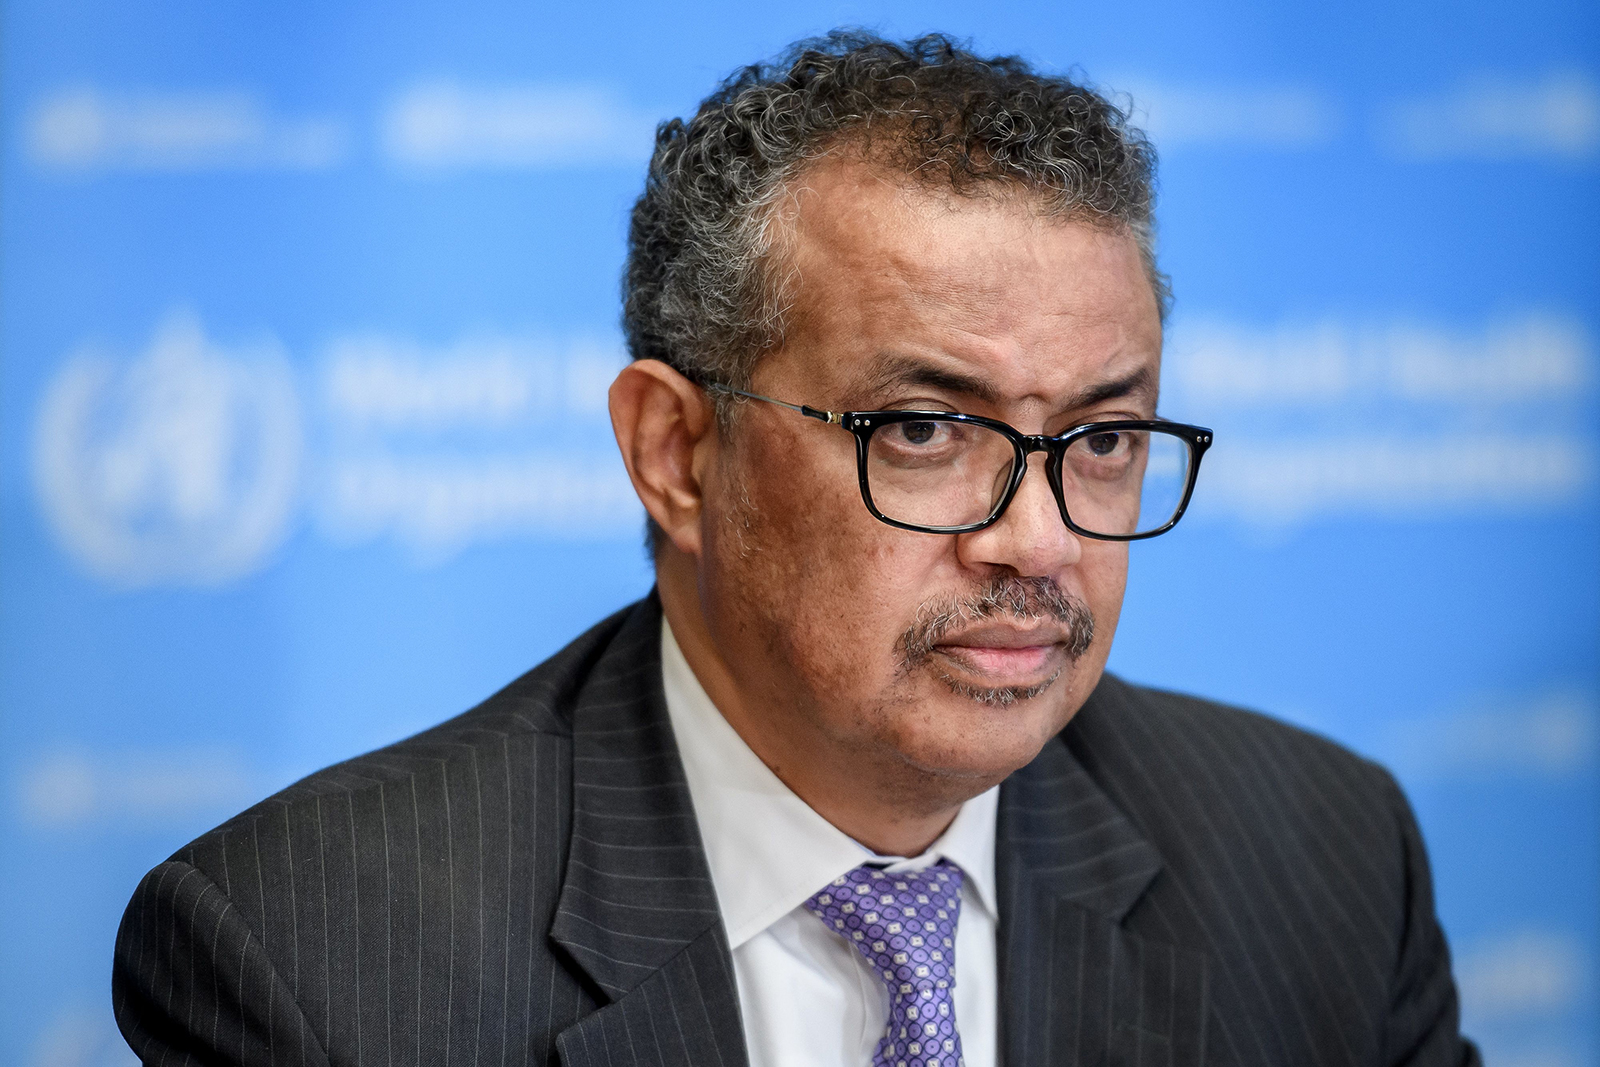 World Health Organization (WHO) Director-General Tedros Adhanom Ghebreyesus attends a daily press briefing on Covid-19 virus at the WHO headquaters in Geneva, Switzerland, on March 9.